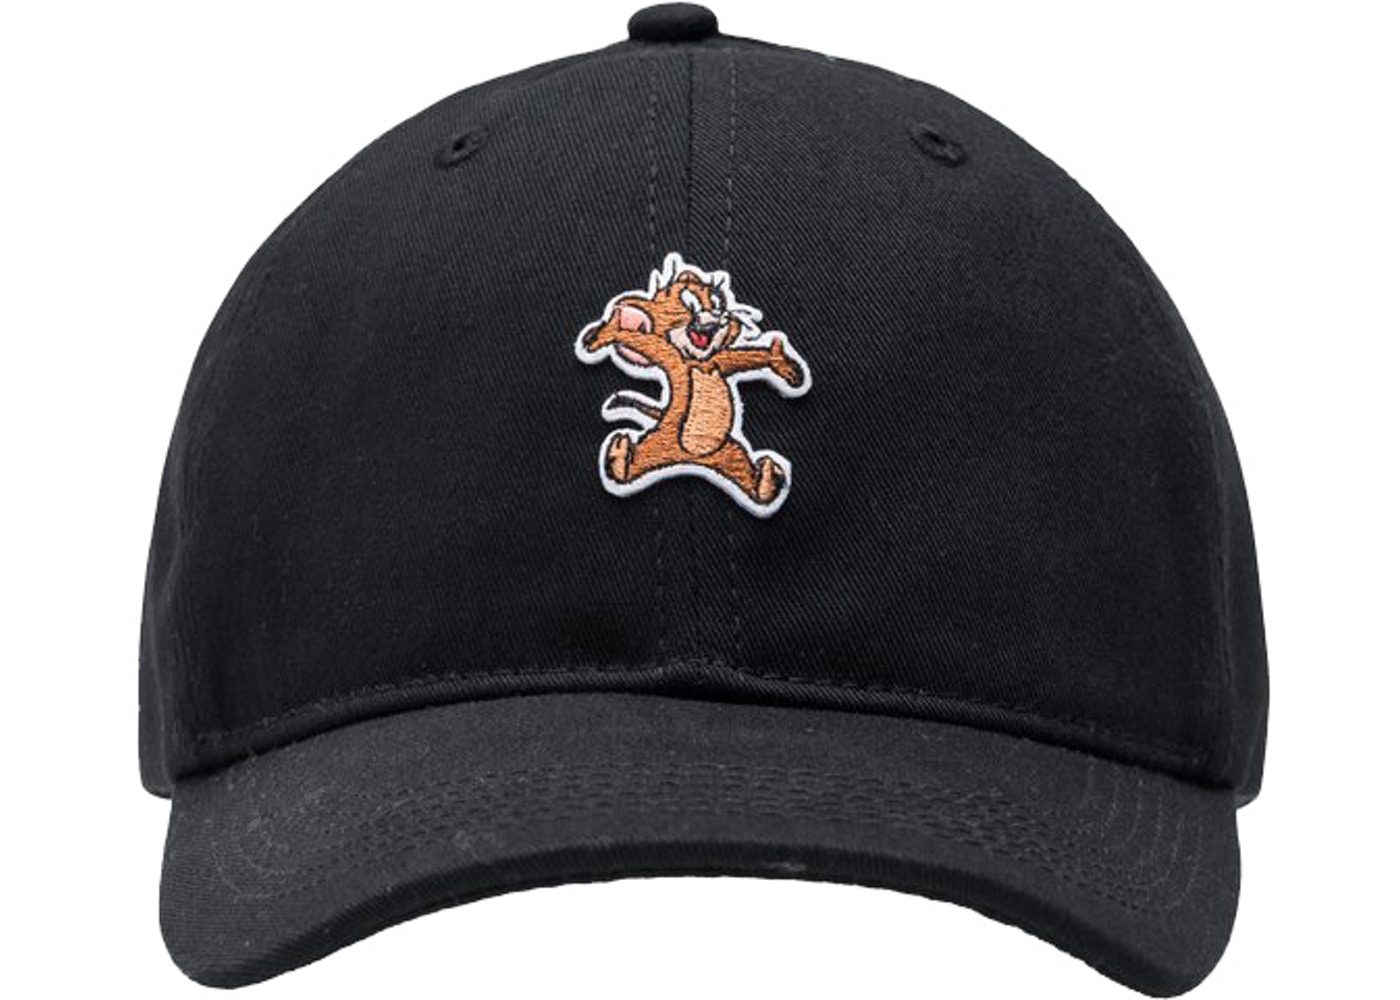 f243535d Kith x Tom & Jerry Cap Black • Buy or Sell on StockX